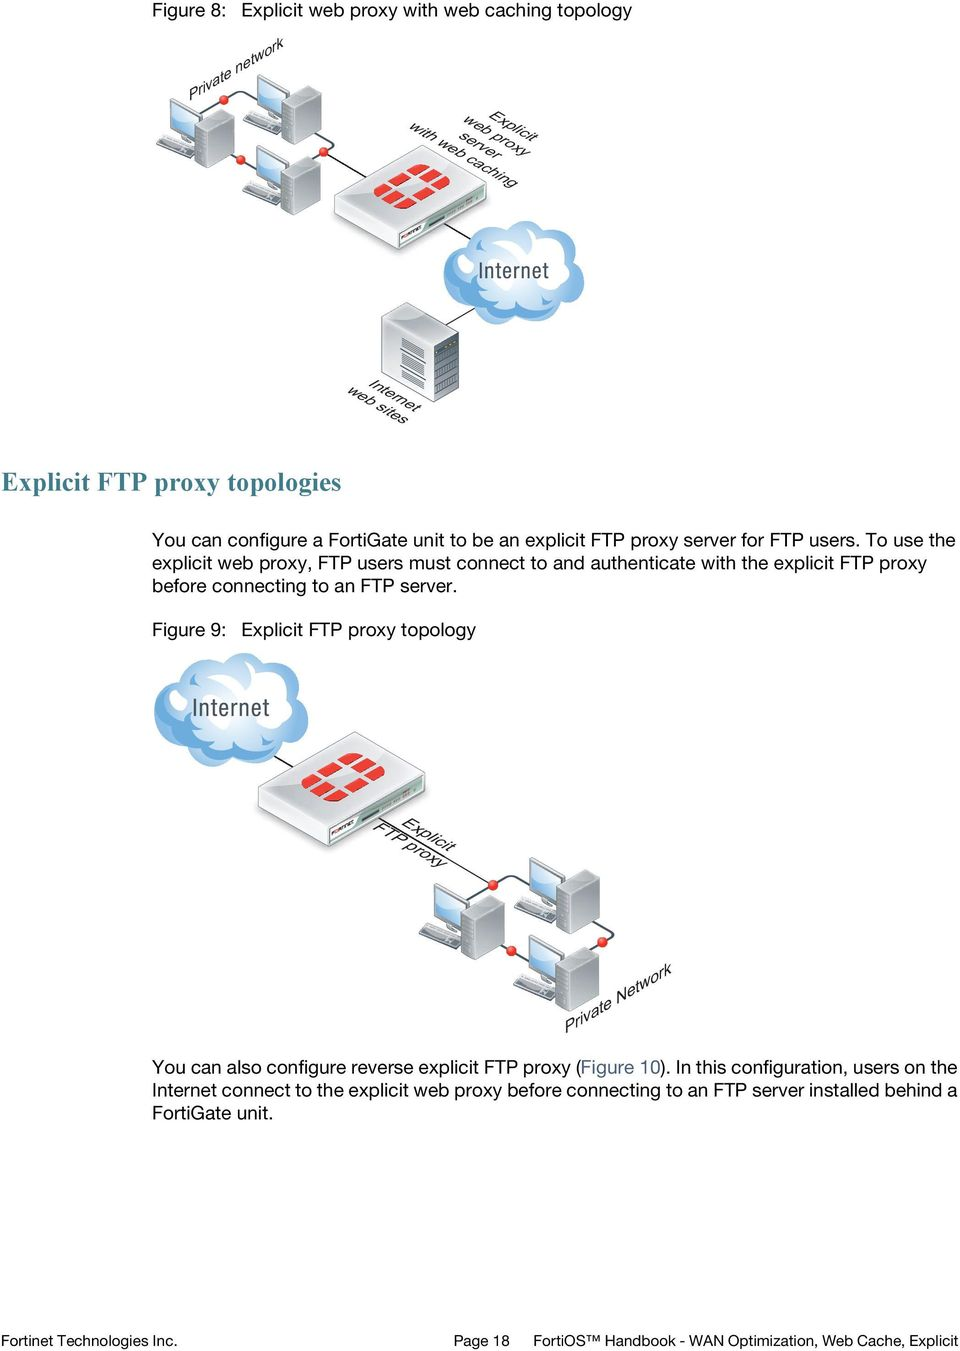 FortiOS Handbook WAN Optimization, Web Cache, Explicit Proxy, and